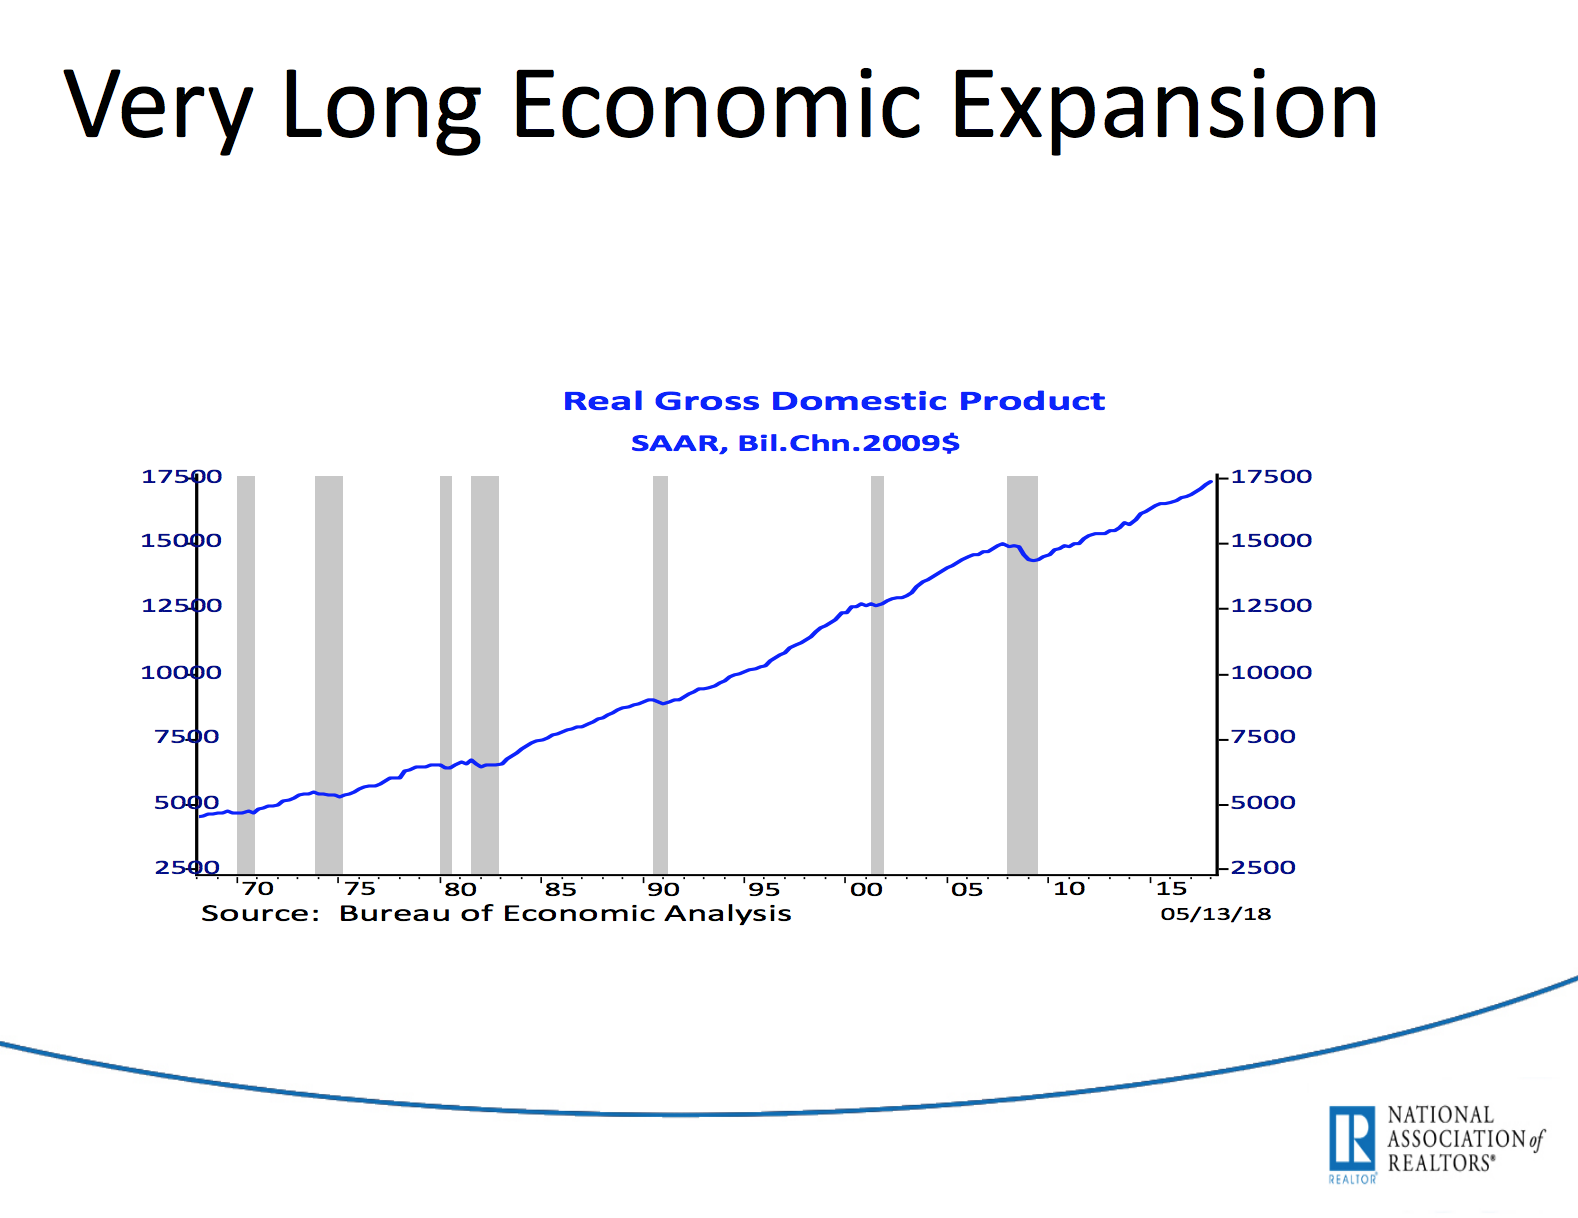 The economy marches on. We are in a period of record economic expansion.